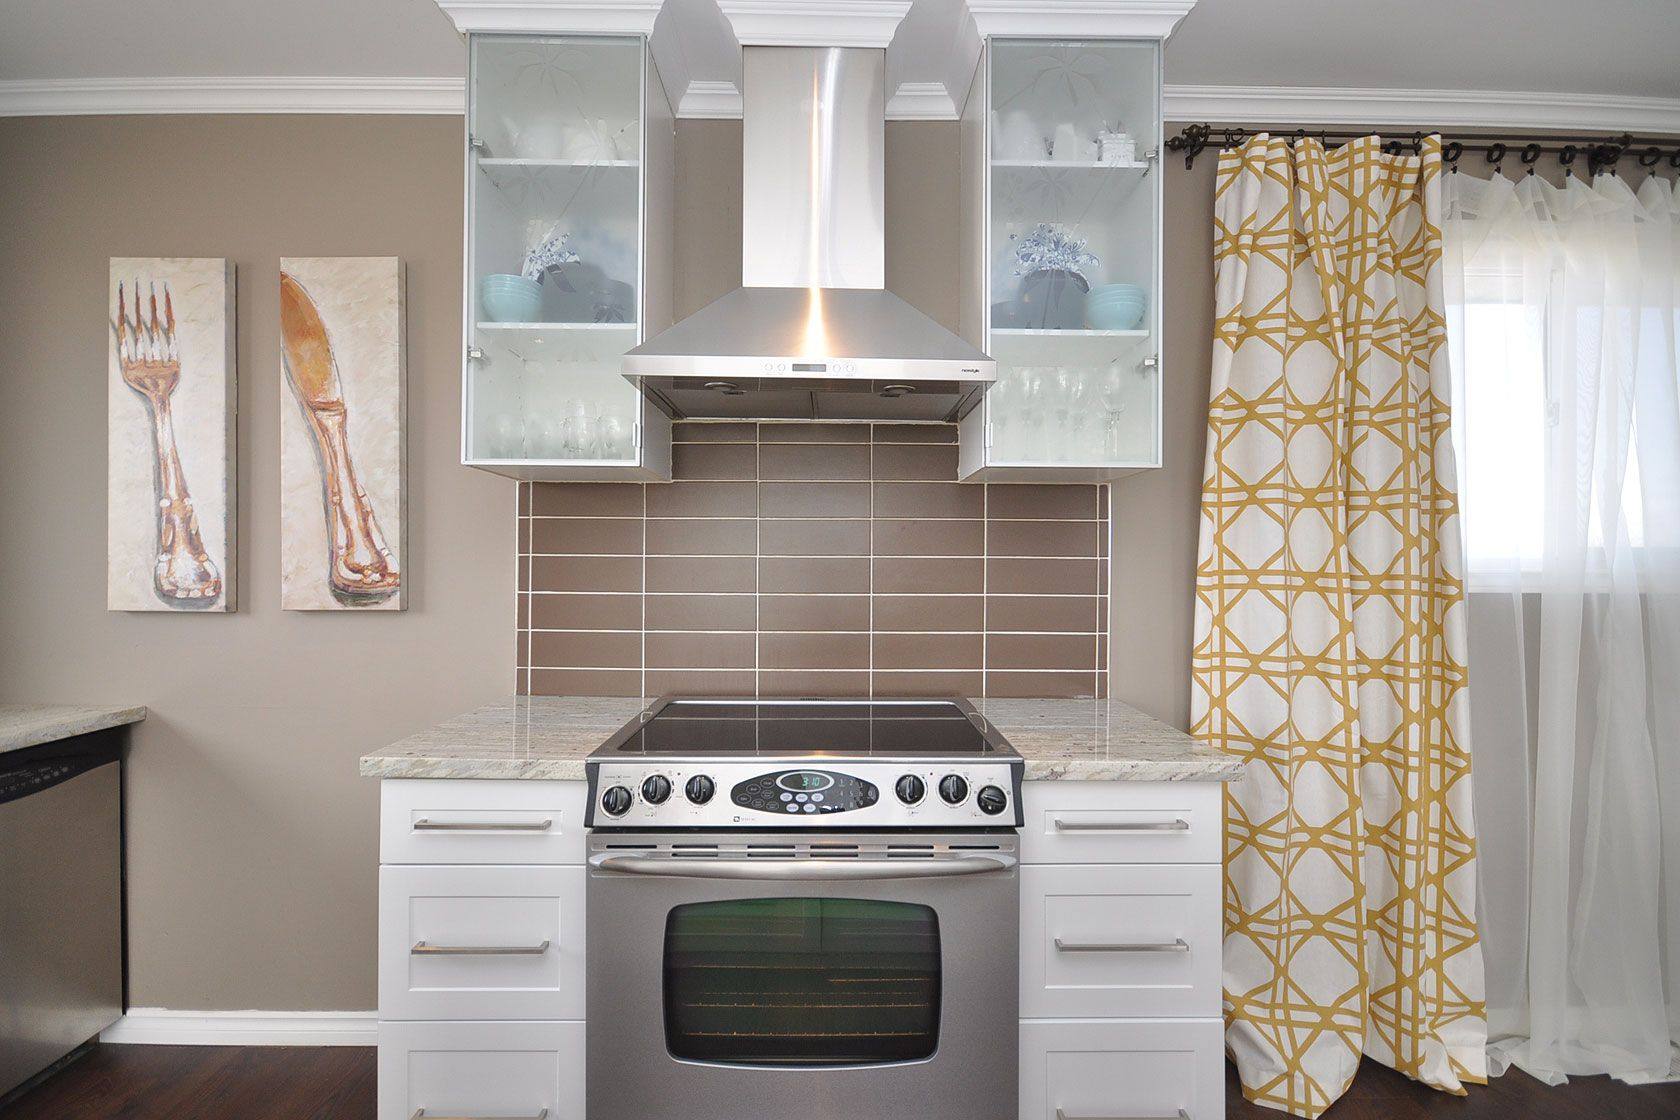 kitchen reno ikea nickelby frosted glass cabinets chocolate tile backsplash river white. Black Bedroom Furniture Sets. Home Design Ideas